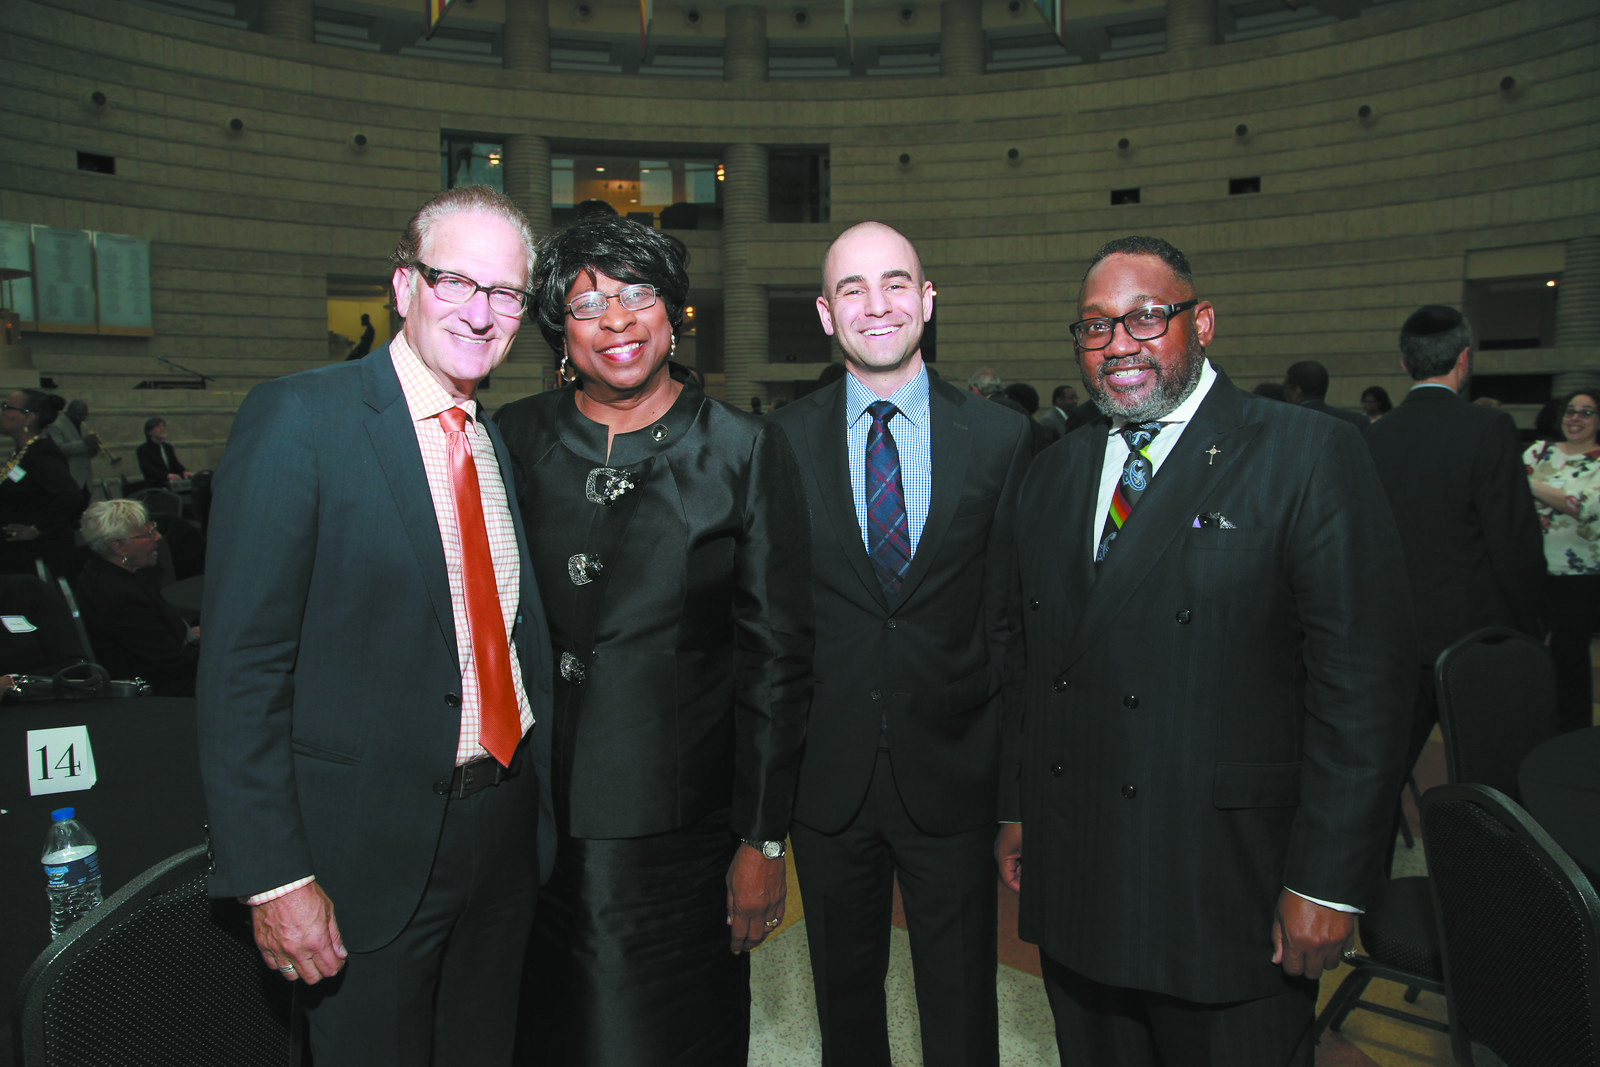 Coalition for Black and Jewish Unity leadership team: Mark Jacobs, AIPAC, Michigan Director of African-American Outreach; Rev. DeeDee M. Coleman, president, Council of Baptist Pastors of Detroit and Vicinity; David Kurzmann, executive director, Jewish Community Relations Council/AJC; and Rev. Kenneth J. Flowers, Greater New Mt. Moriah Missionary Baptist Church.